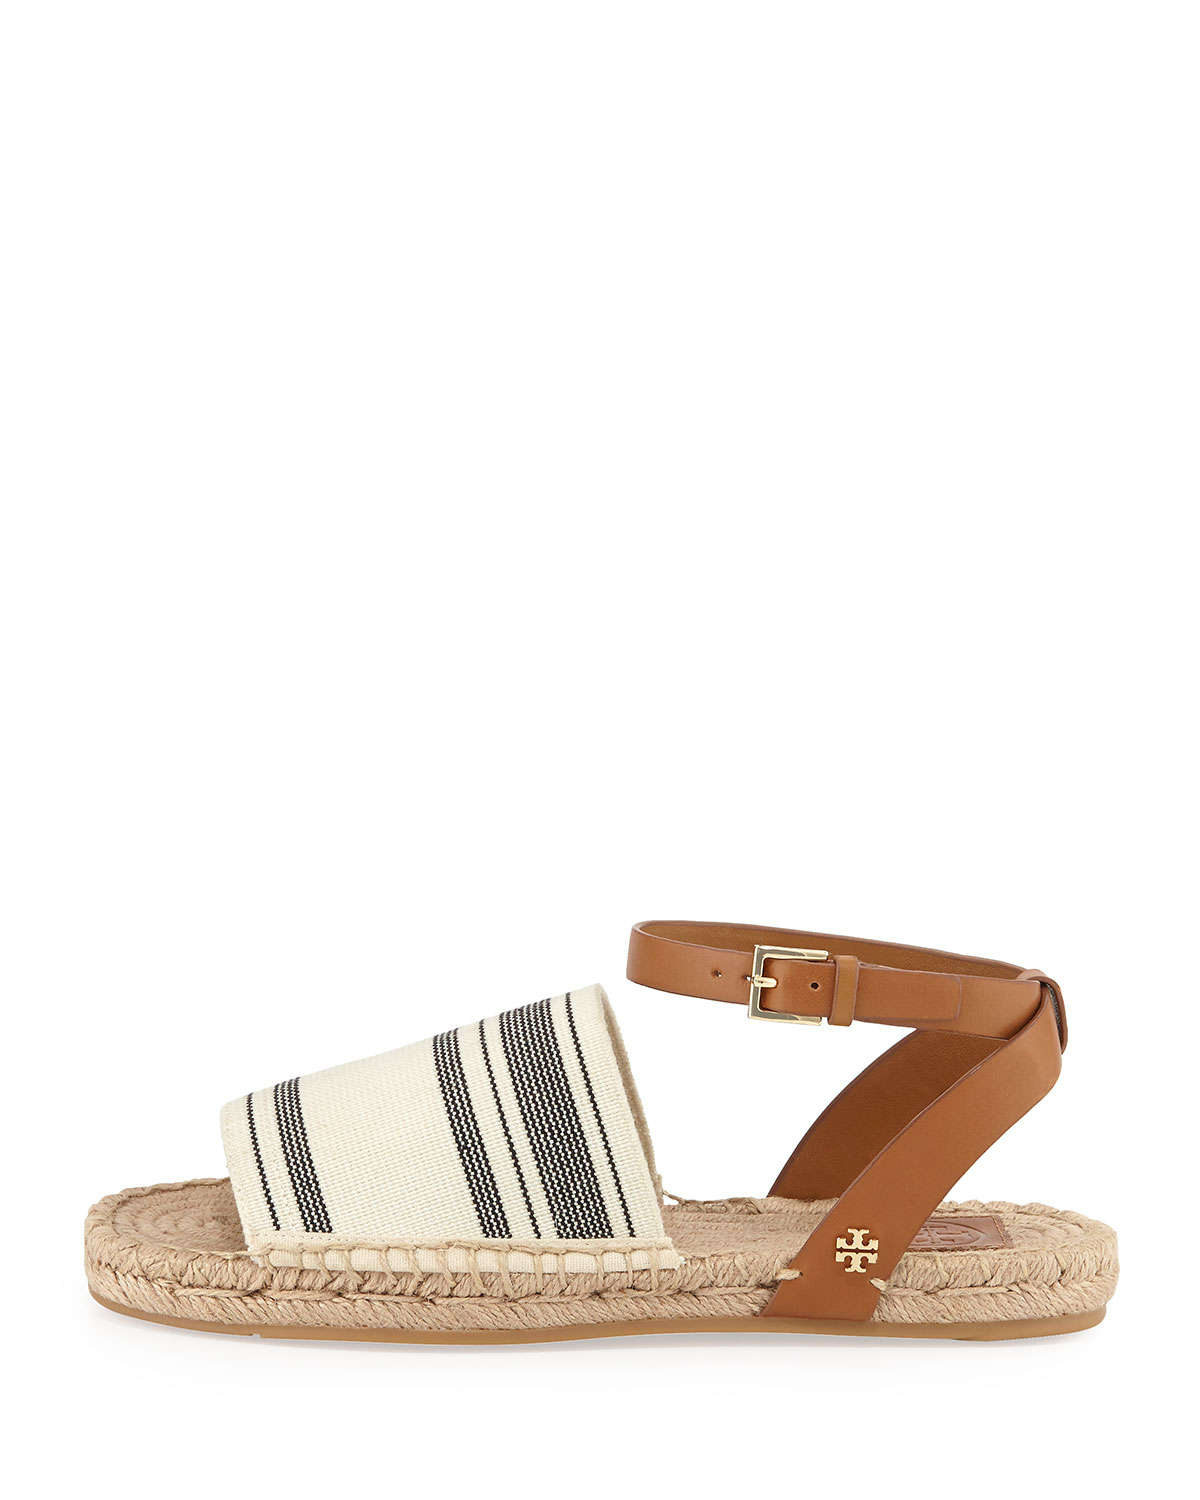 Tory Burch Striped Espadrille Sandals free shipping popular reliable clearance footlocker finishline discount comfortable Z00hX